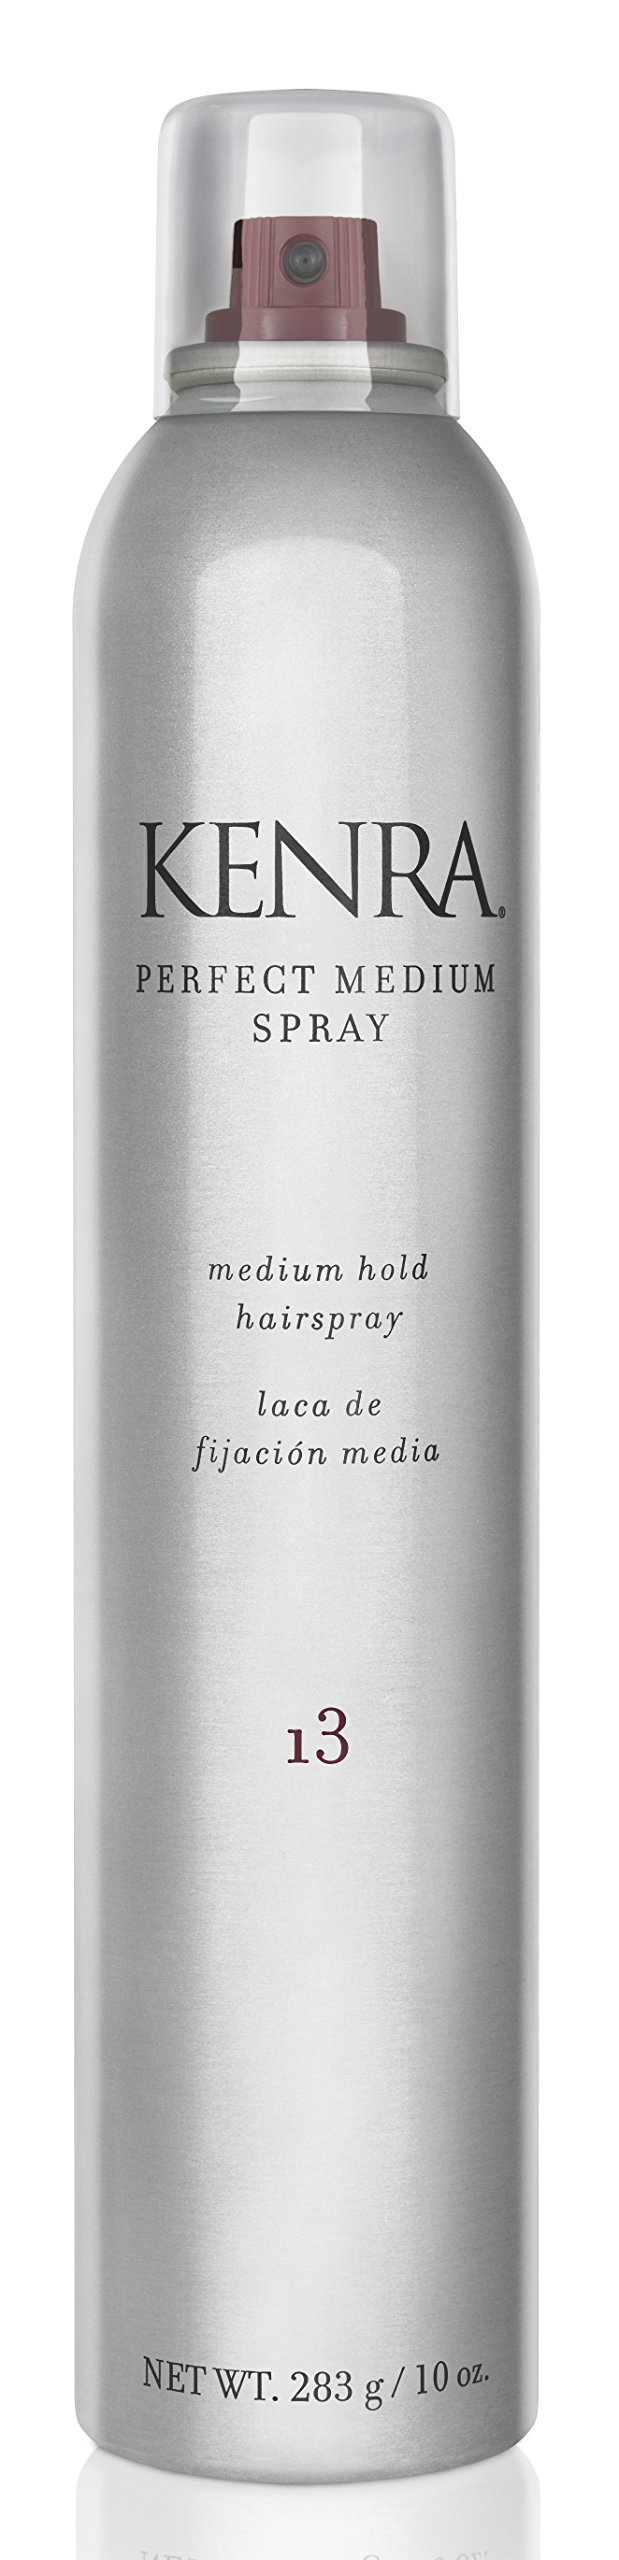 Kenra Perfect Medium Spray #13, 55% VOC, 10-Ounce by Kenra